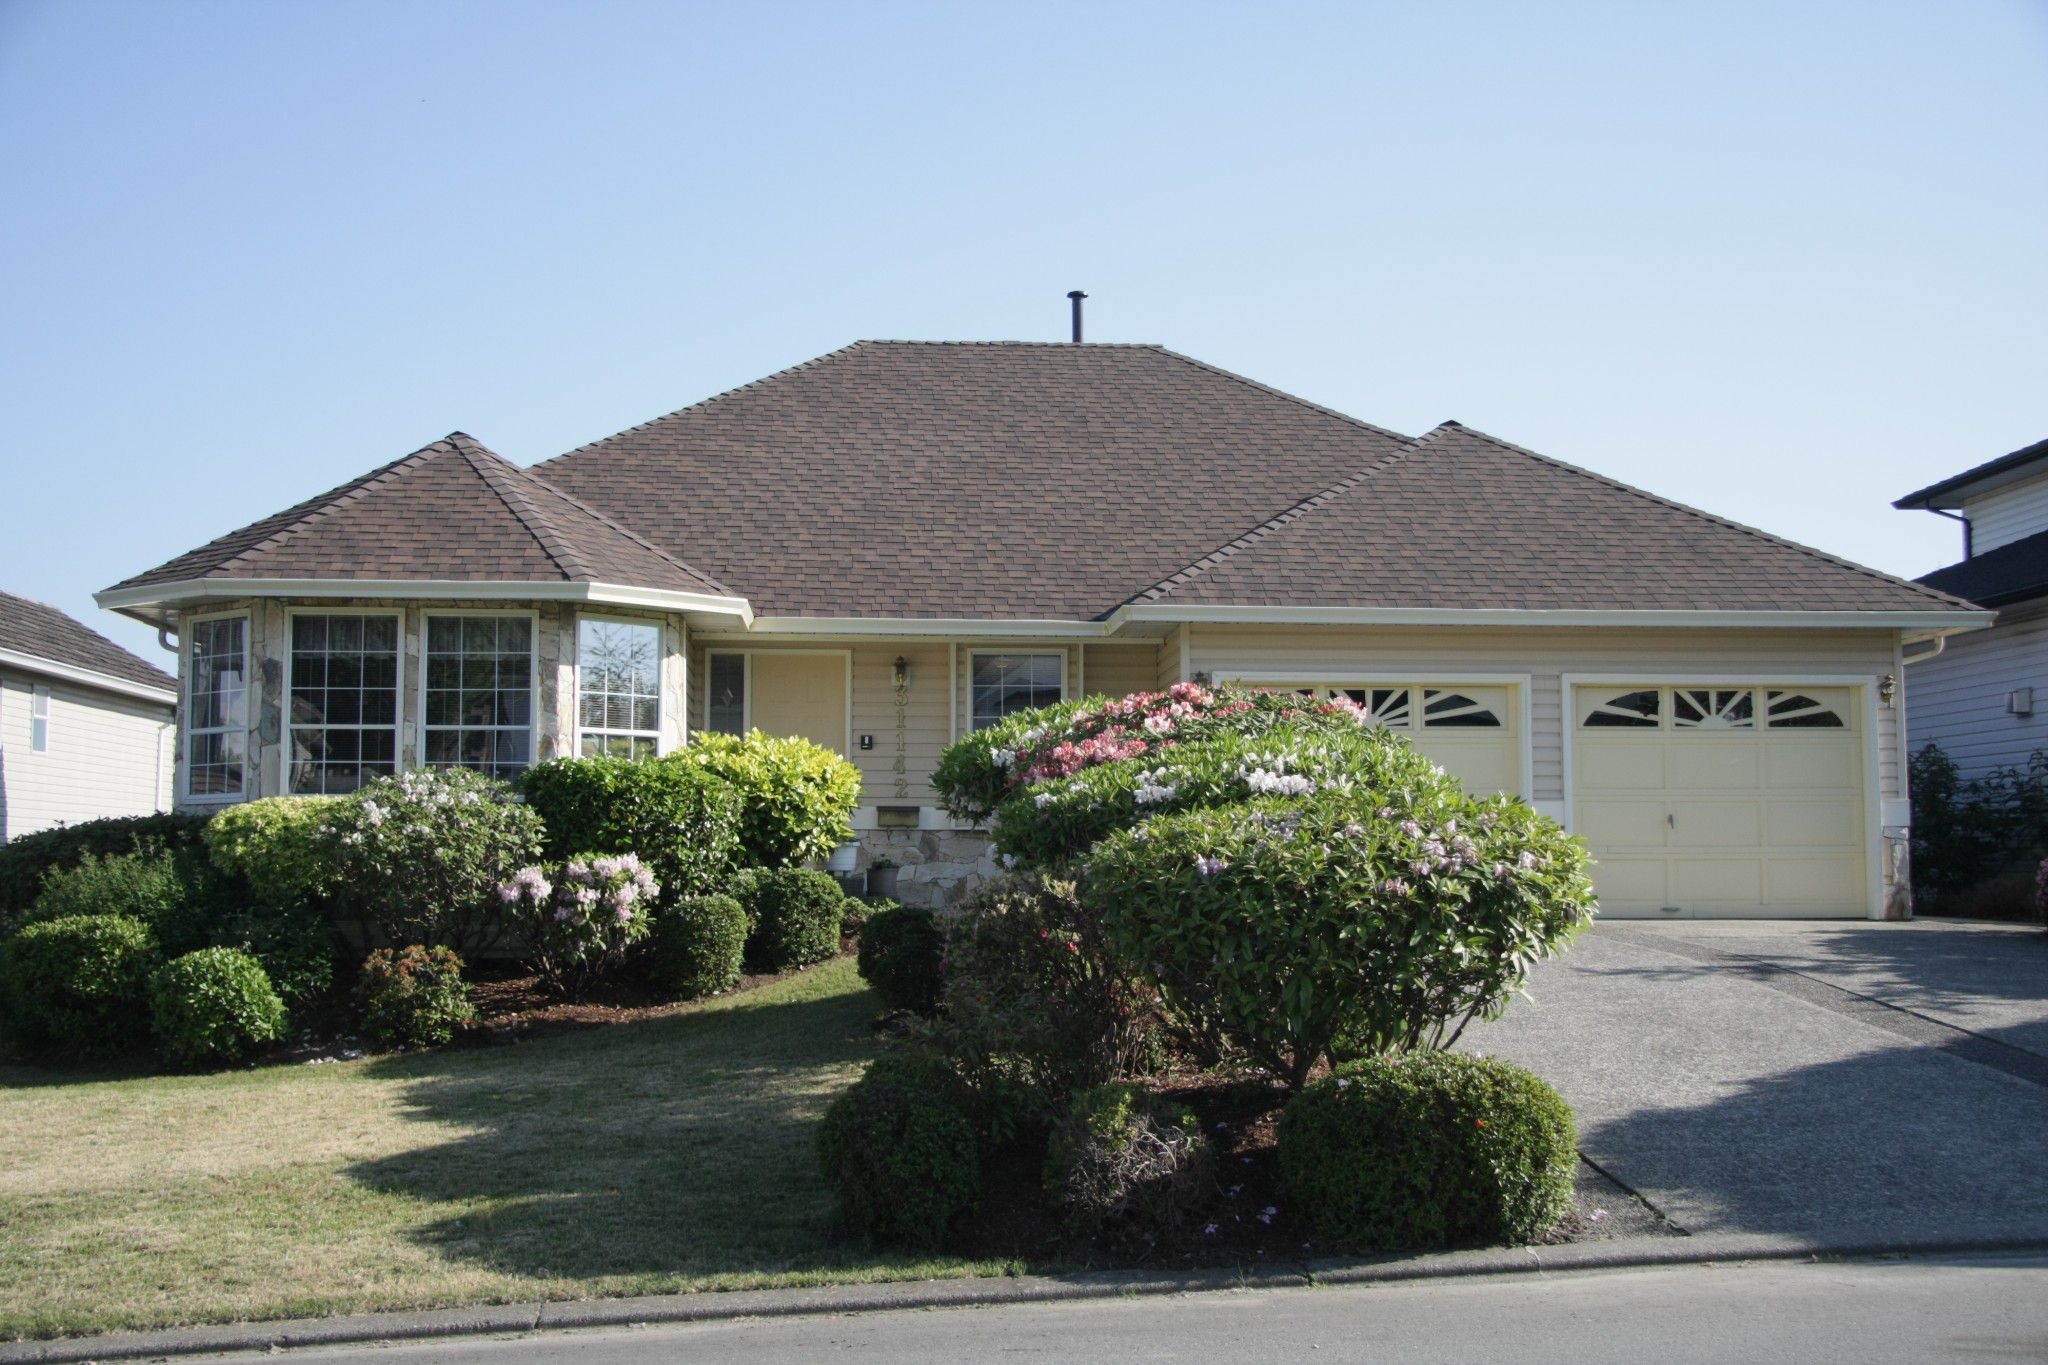 Main Photo: 31142 Sidoni Avenue in Abbotsford: Abbotsford West House for sale : MLS®# R2272343